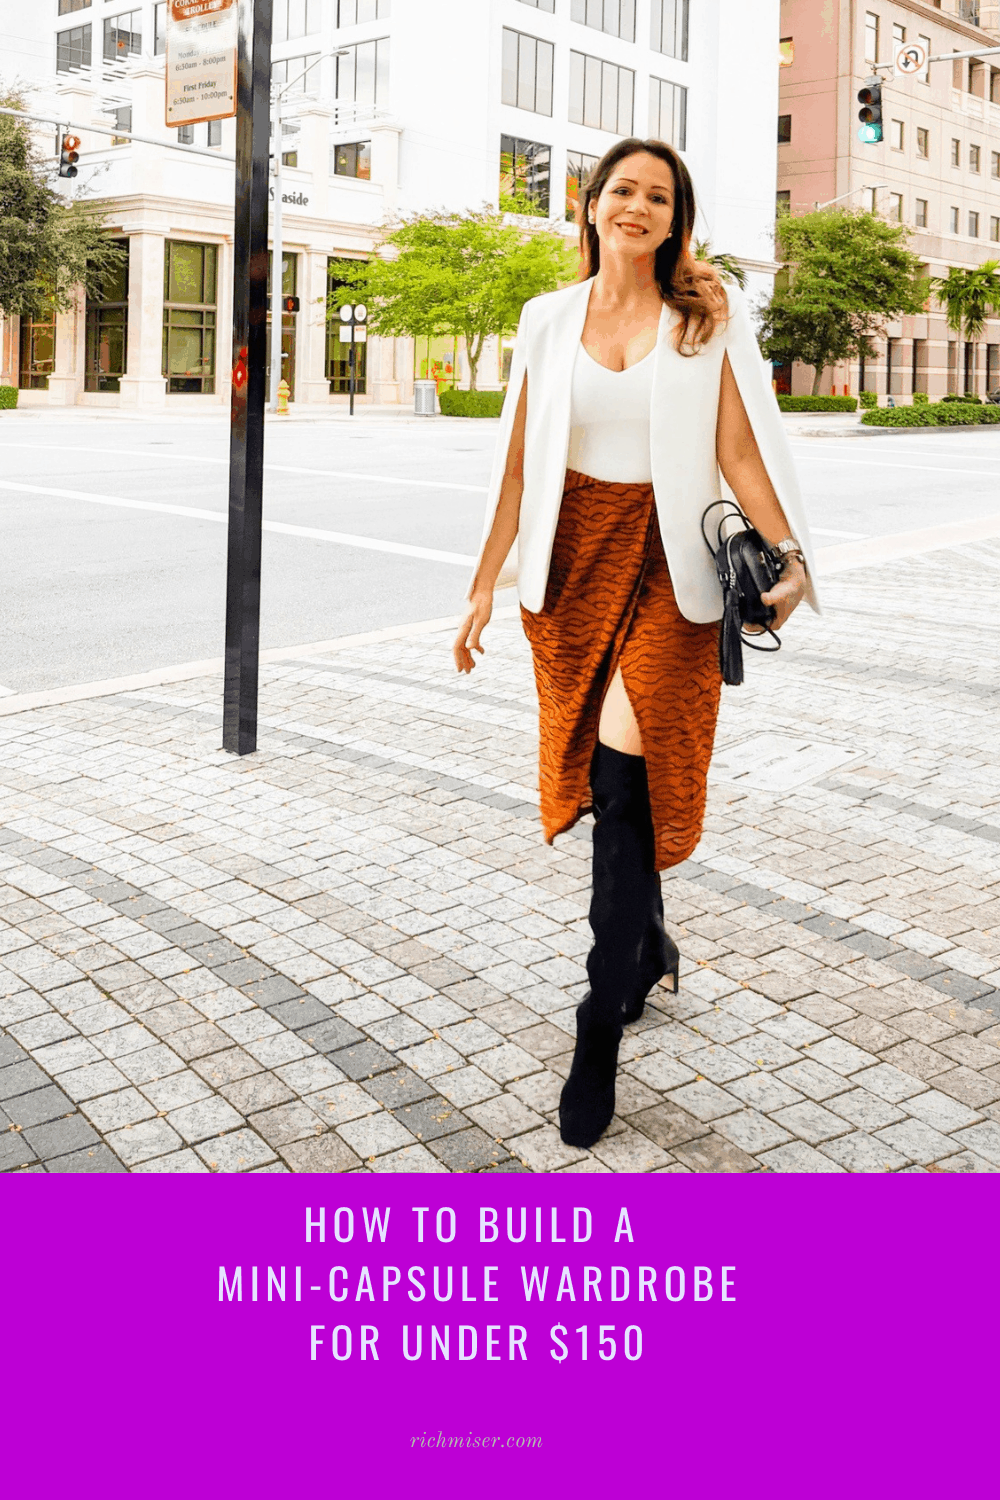 How to Build a Mini-Capsule Wardrobe for Under $150